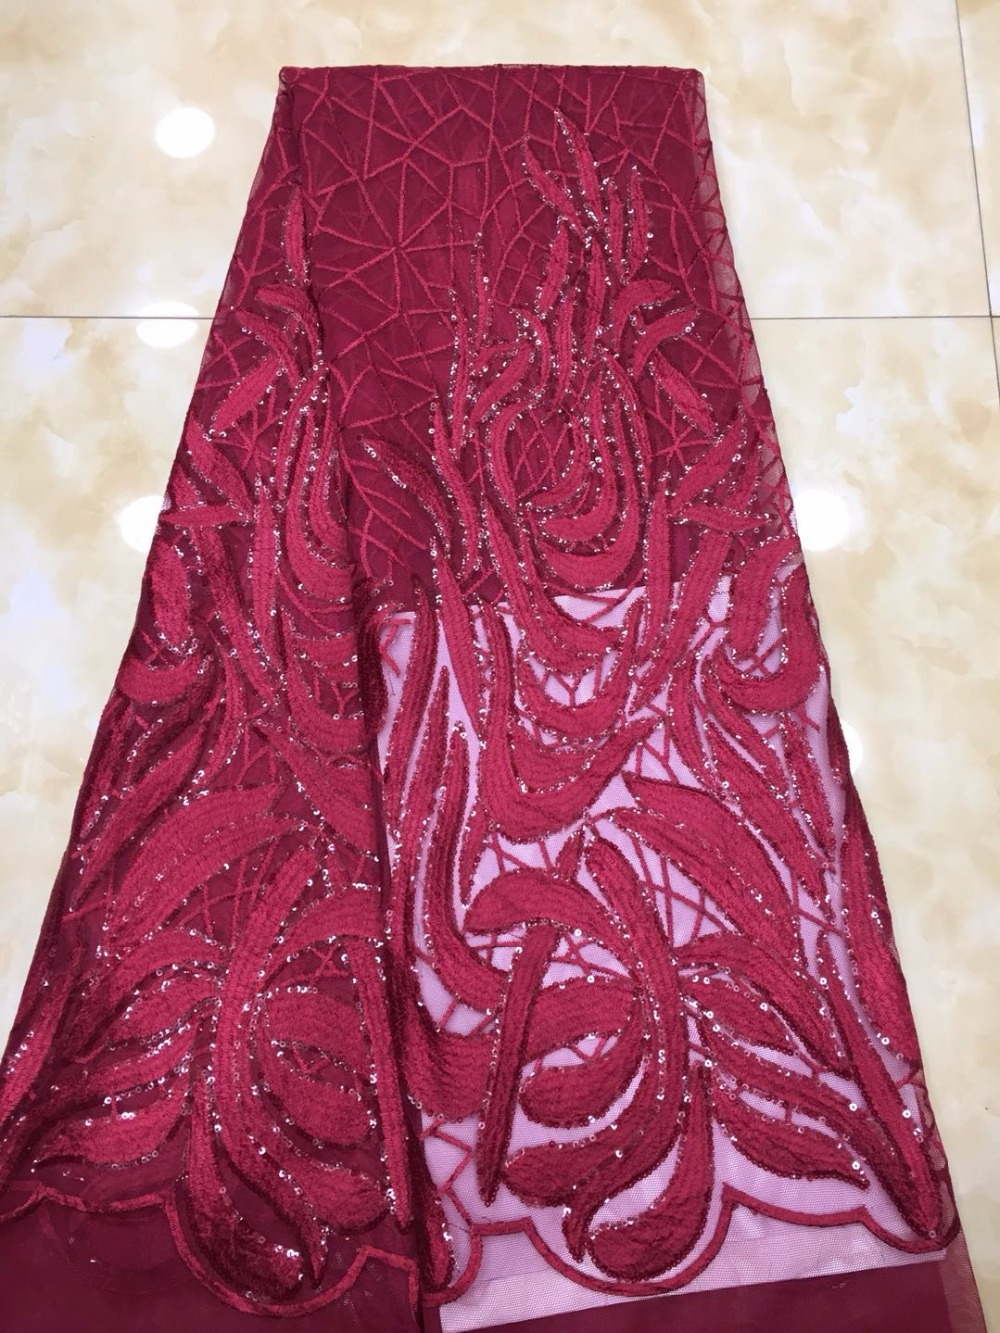 2018 Excellent French Nigerian Laces Fabrics High Quality Tulle African Laces Fabric Wedding African French Tulle Lace 2018 Excellent French Nigerian Laces Fabrics High Quality Tulle African Laces Fabric Wedding African French Tulle Lace